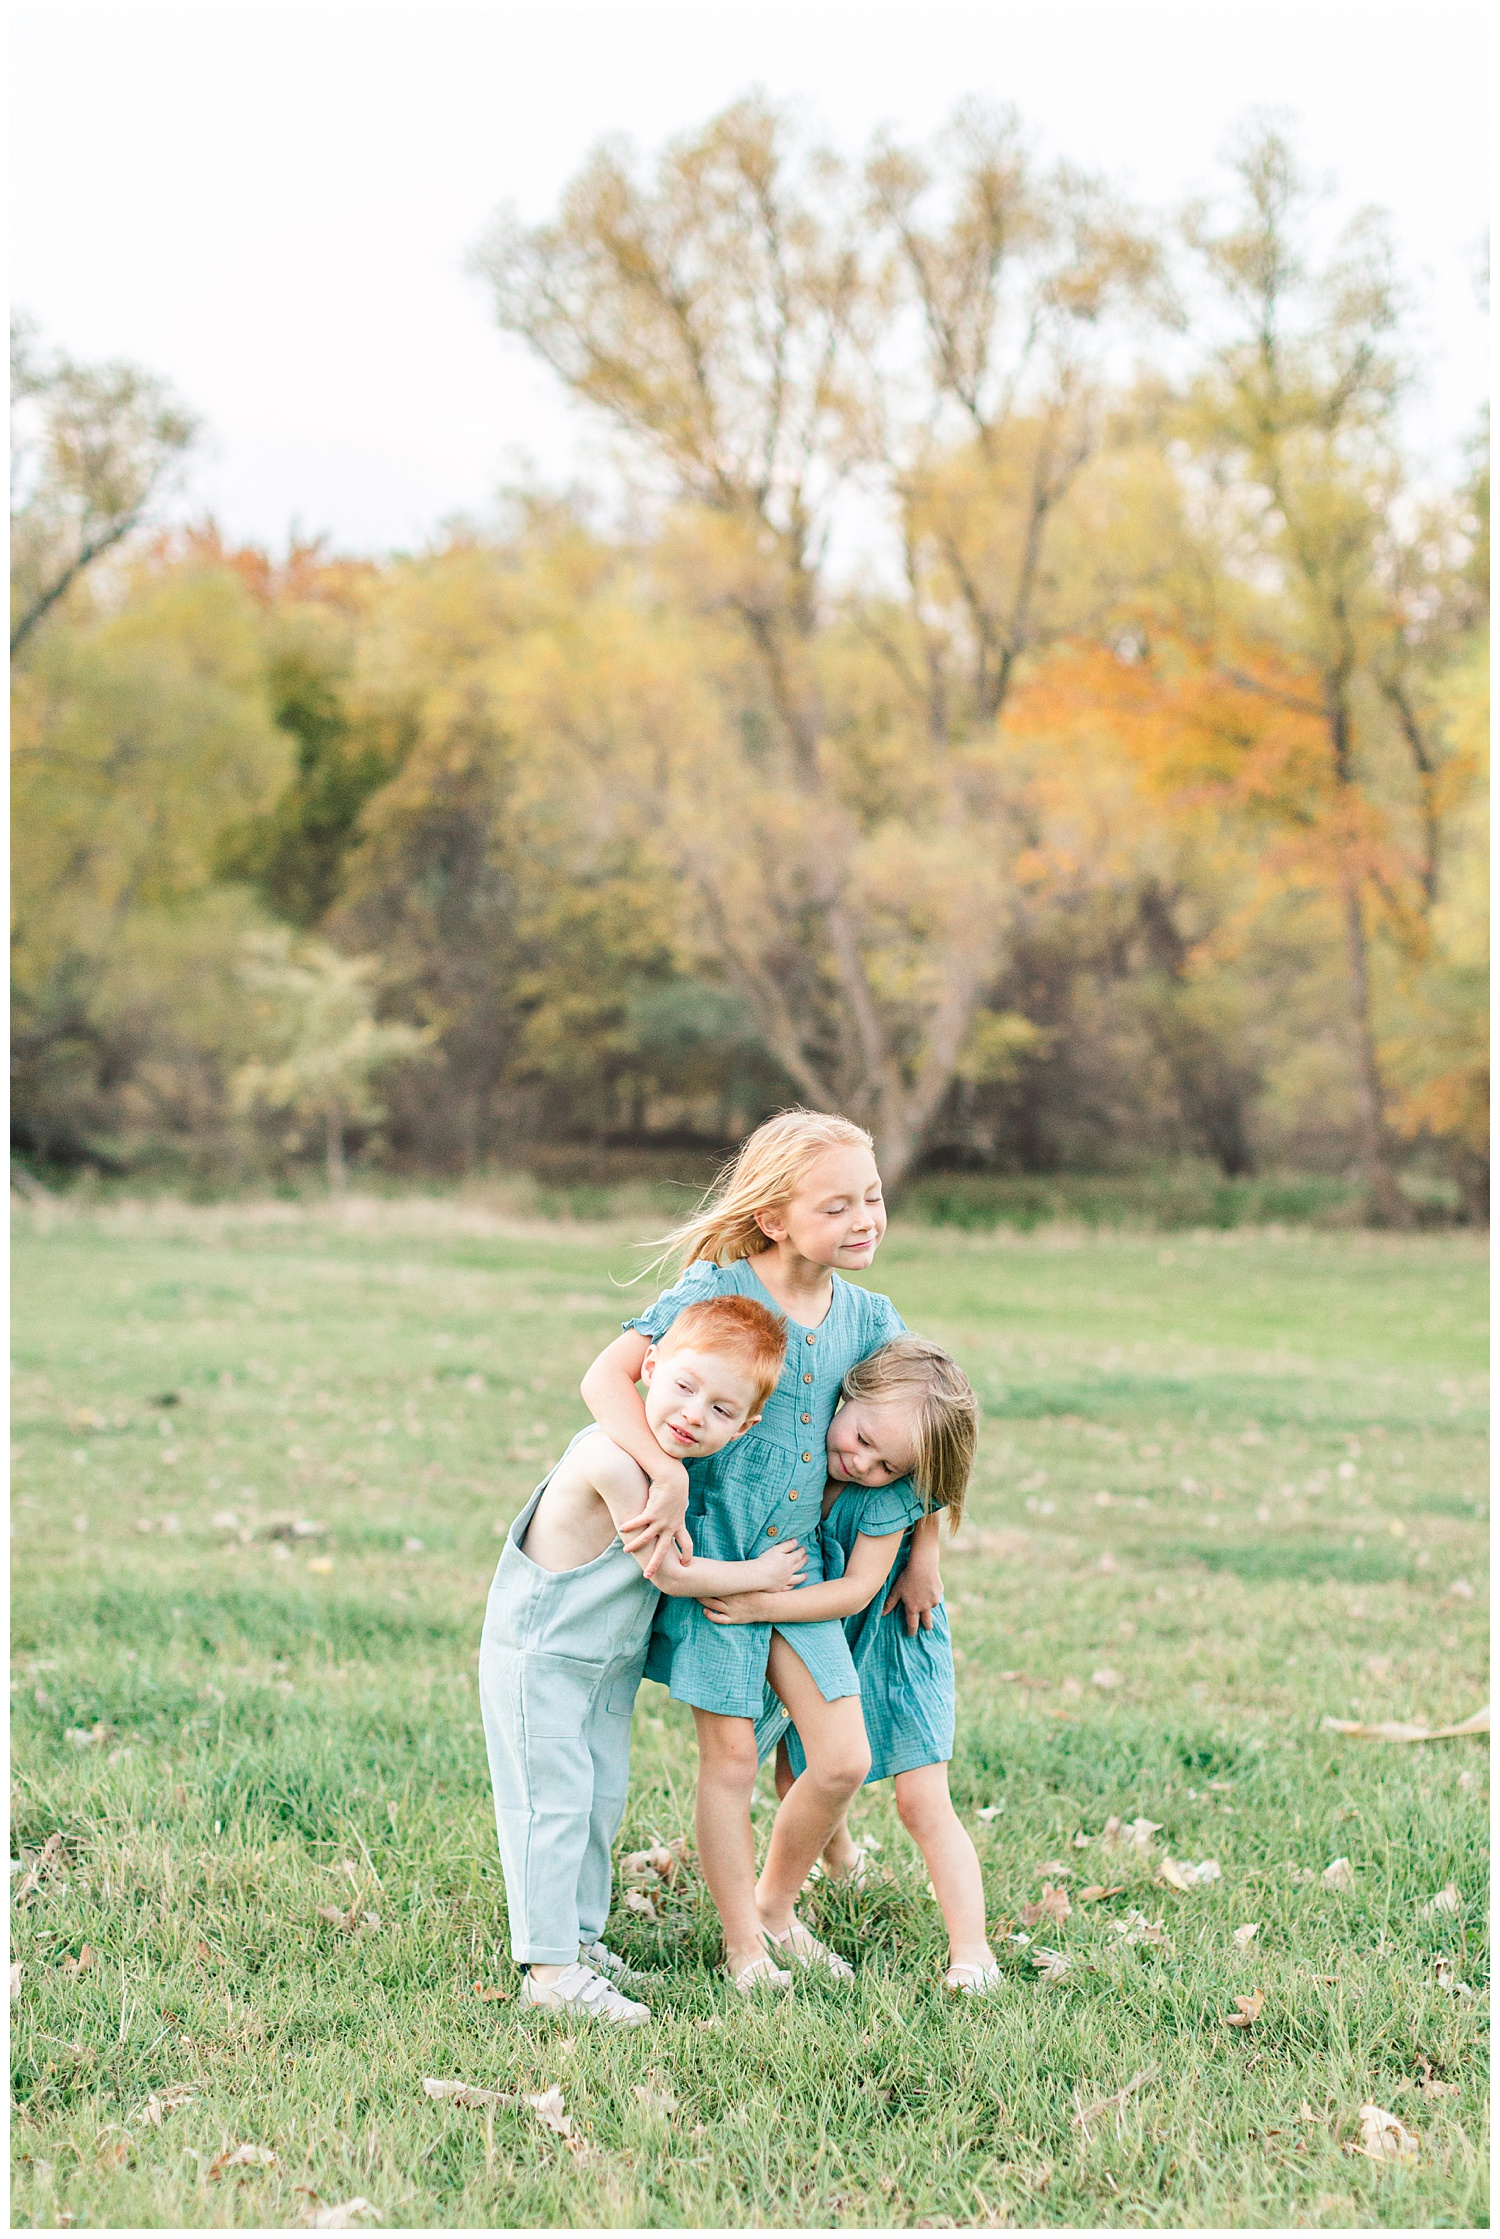 Three children dressed in vintage teal embrace each other in a grassy field looking onward | CB Studio